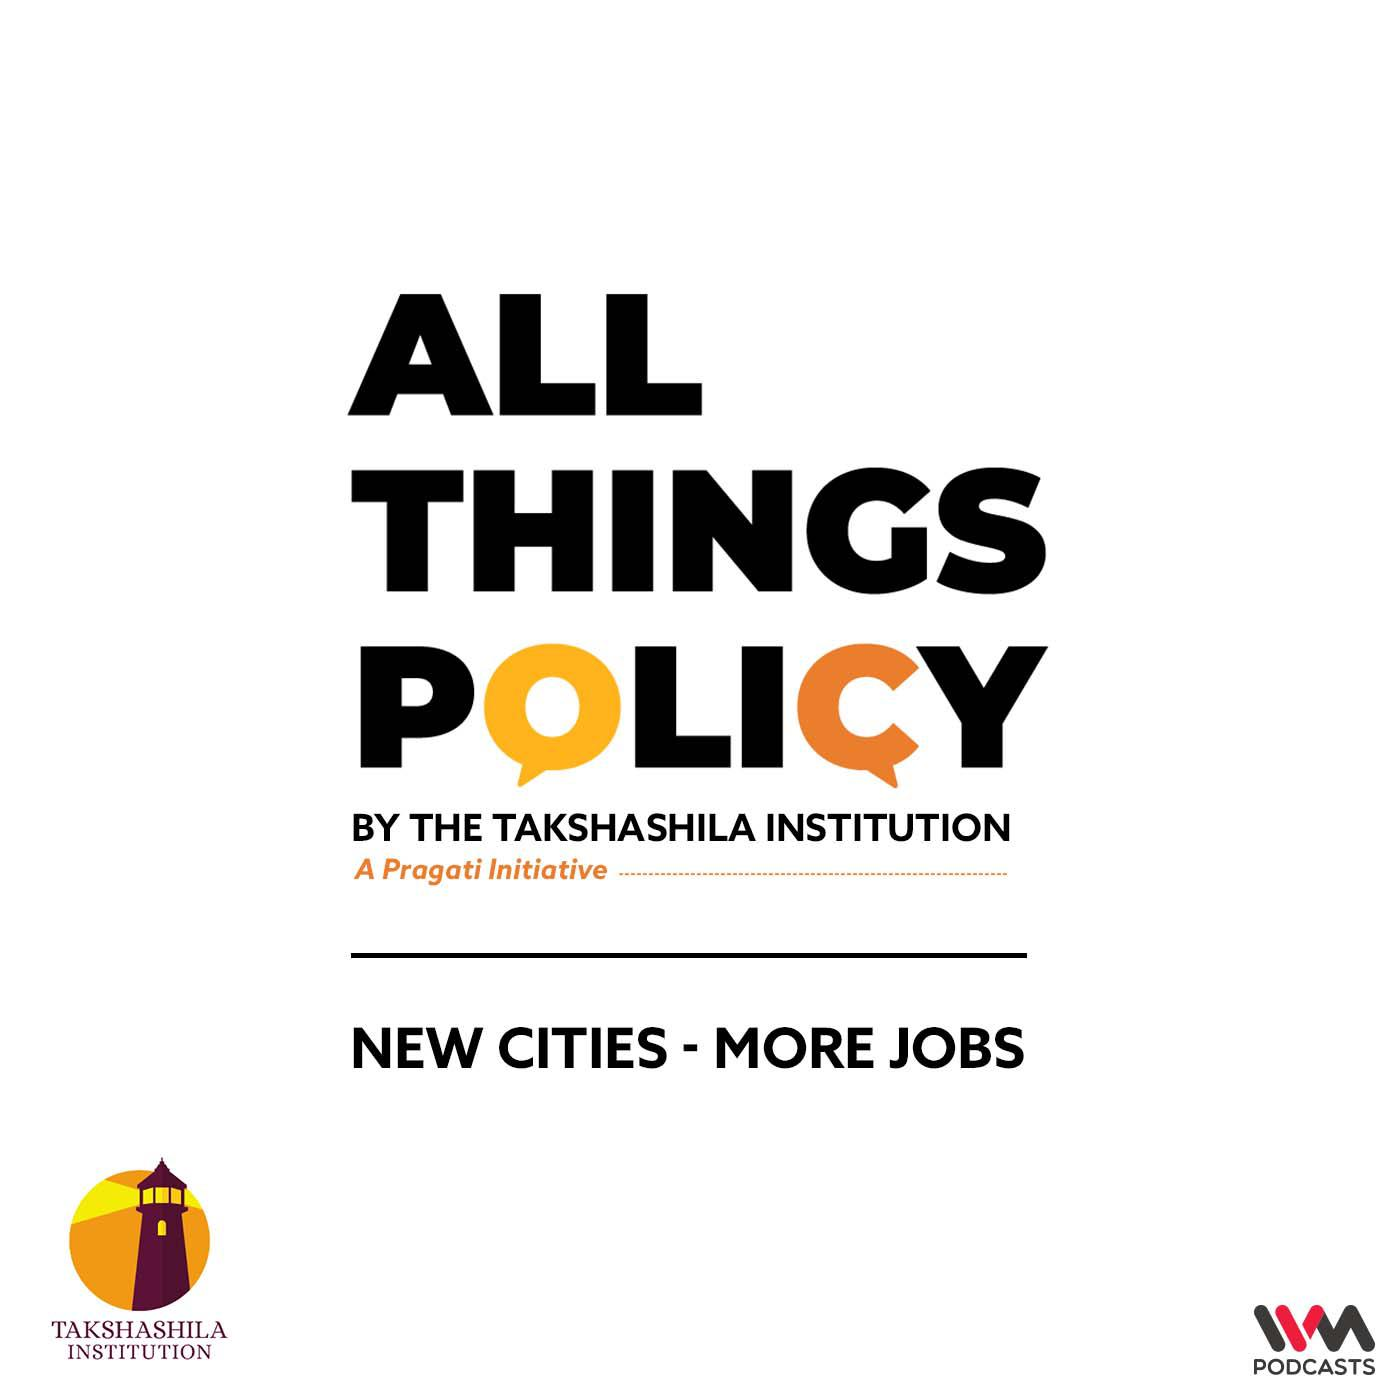 New Cities - More Jobs